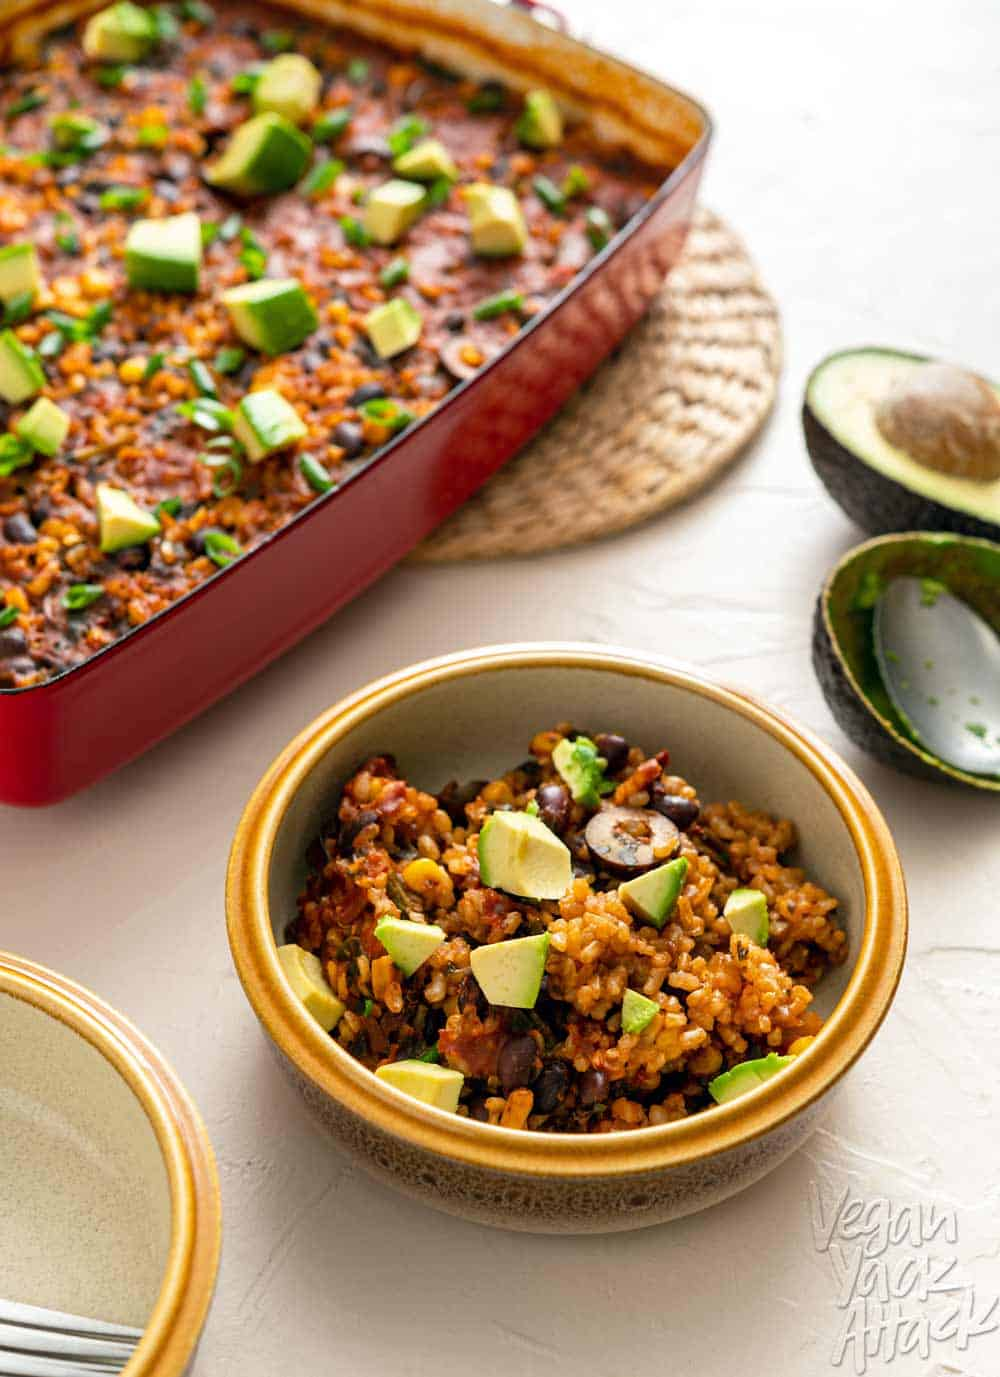 Image of chipotle brown rice bake in a red casserole dish on a beige background with bowl in foreground